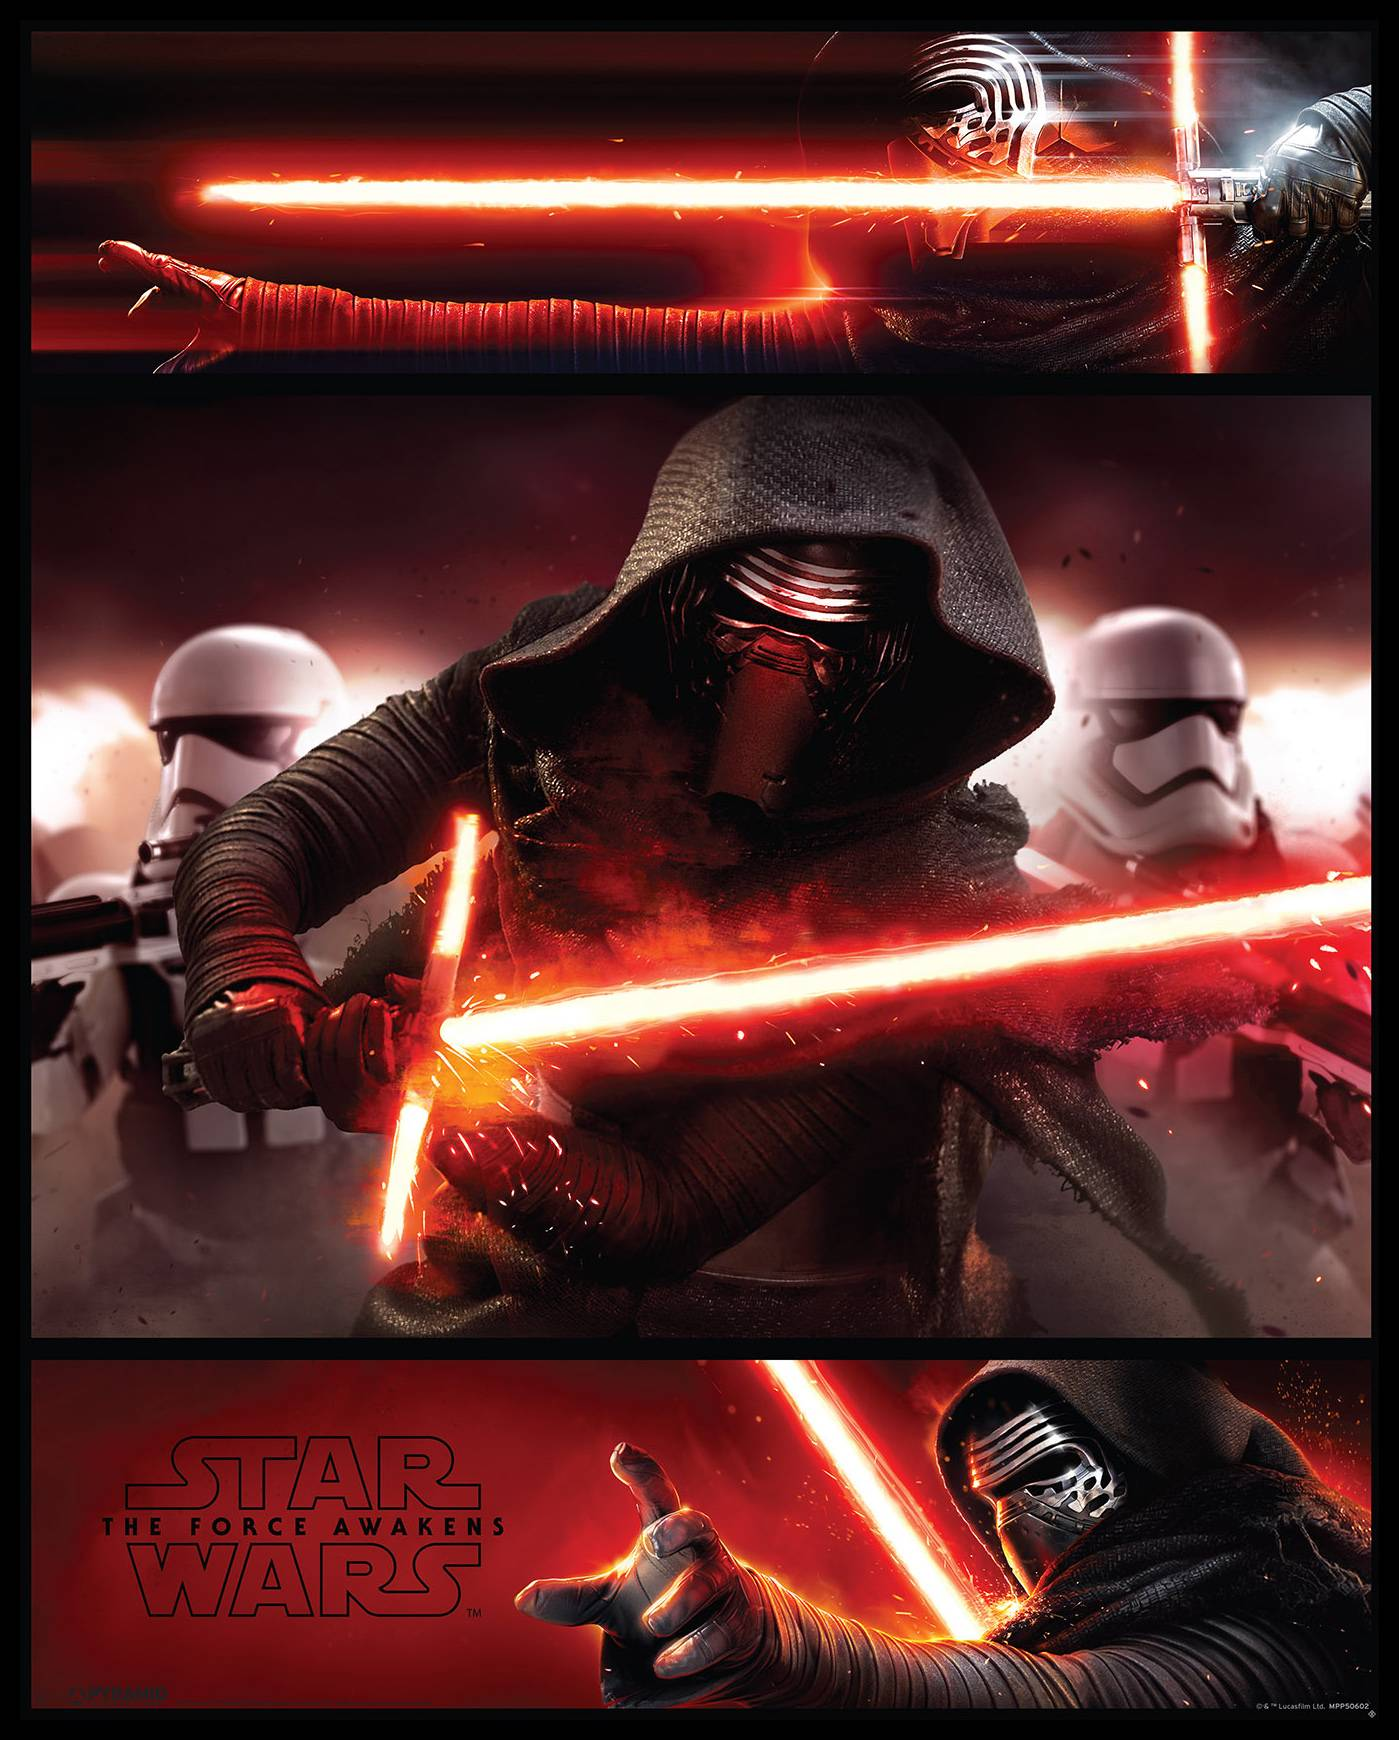 By Agus Star Wars Episode VII - Kylo Ren Panels - 40x50 cm